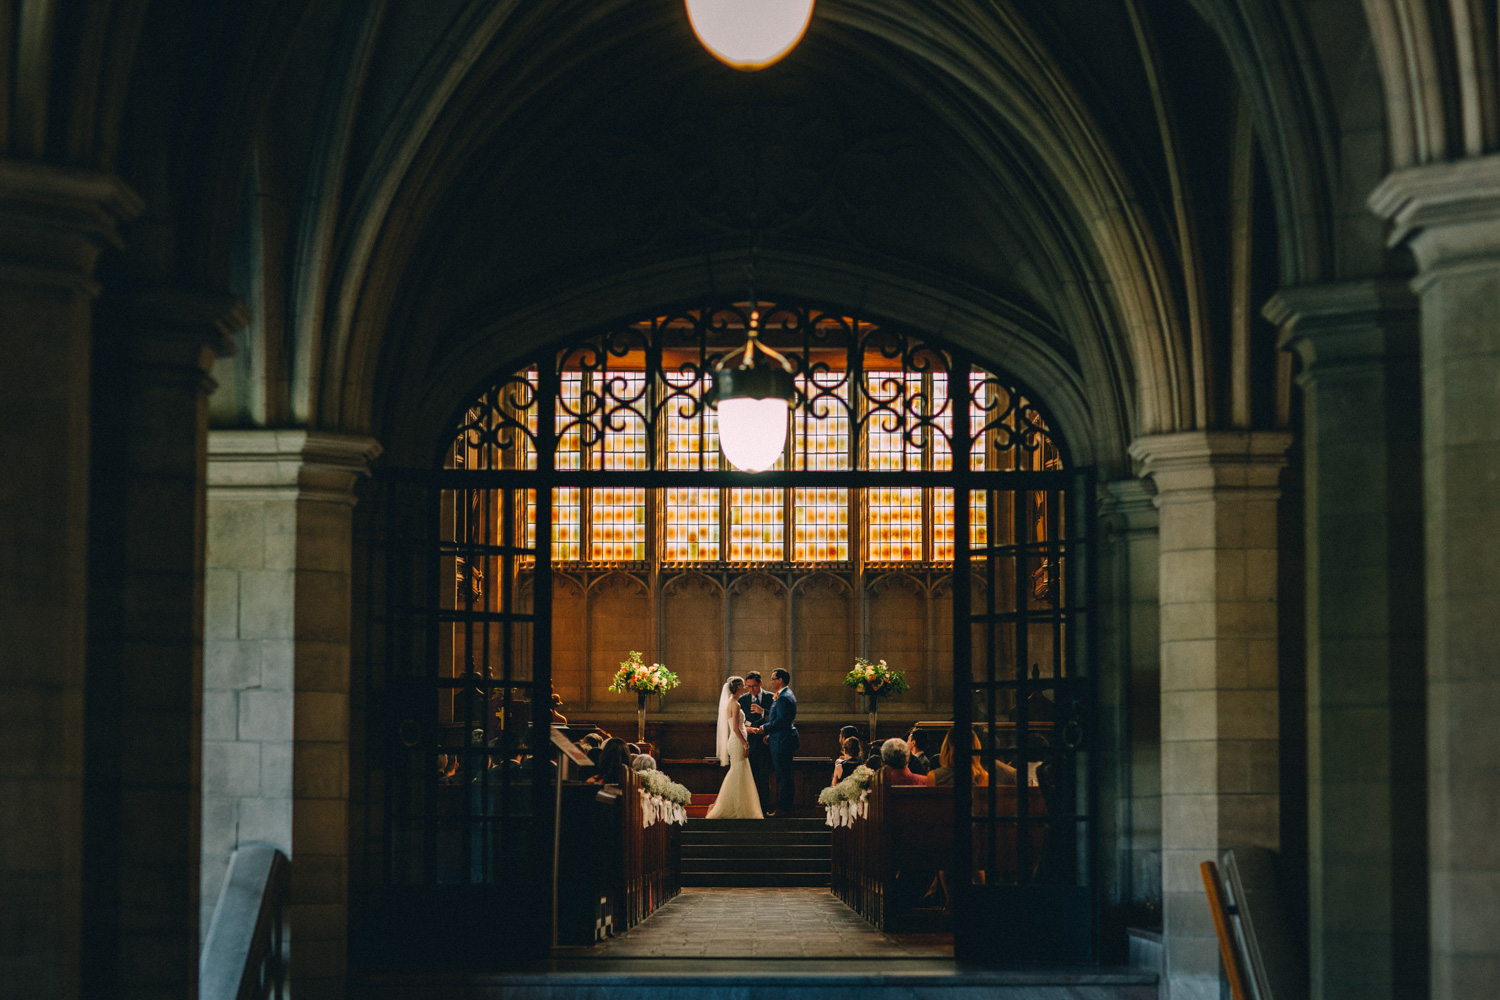 knox-college-toronto-wedding-photos-by-sam-wong-of-artanis-collective_31